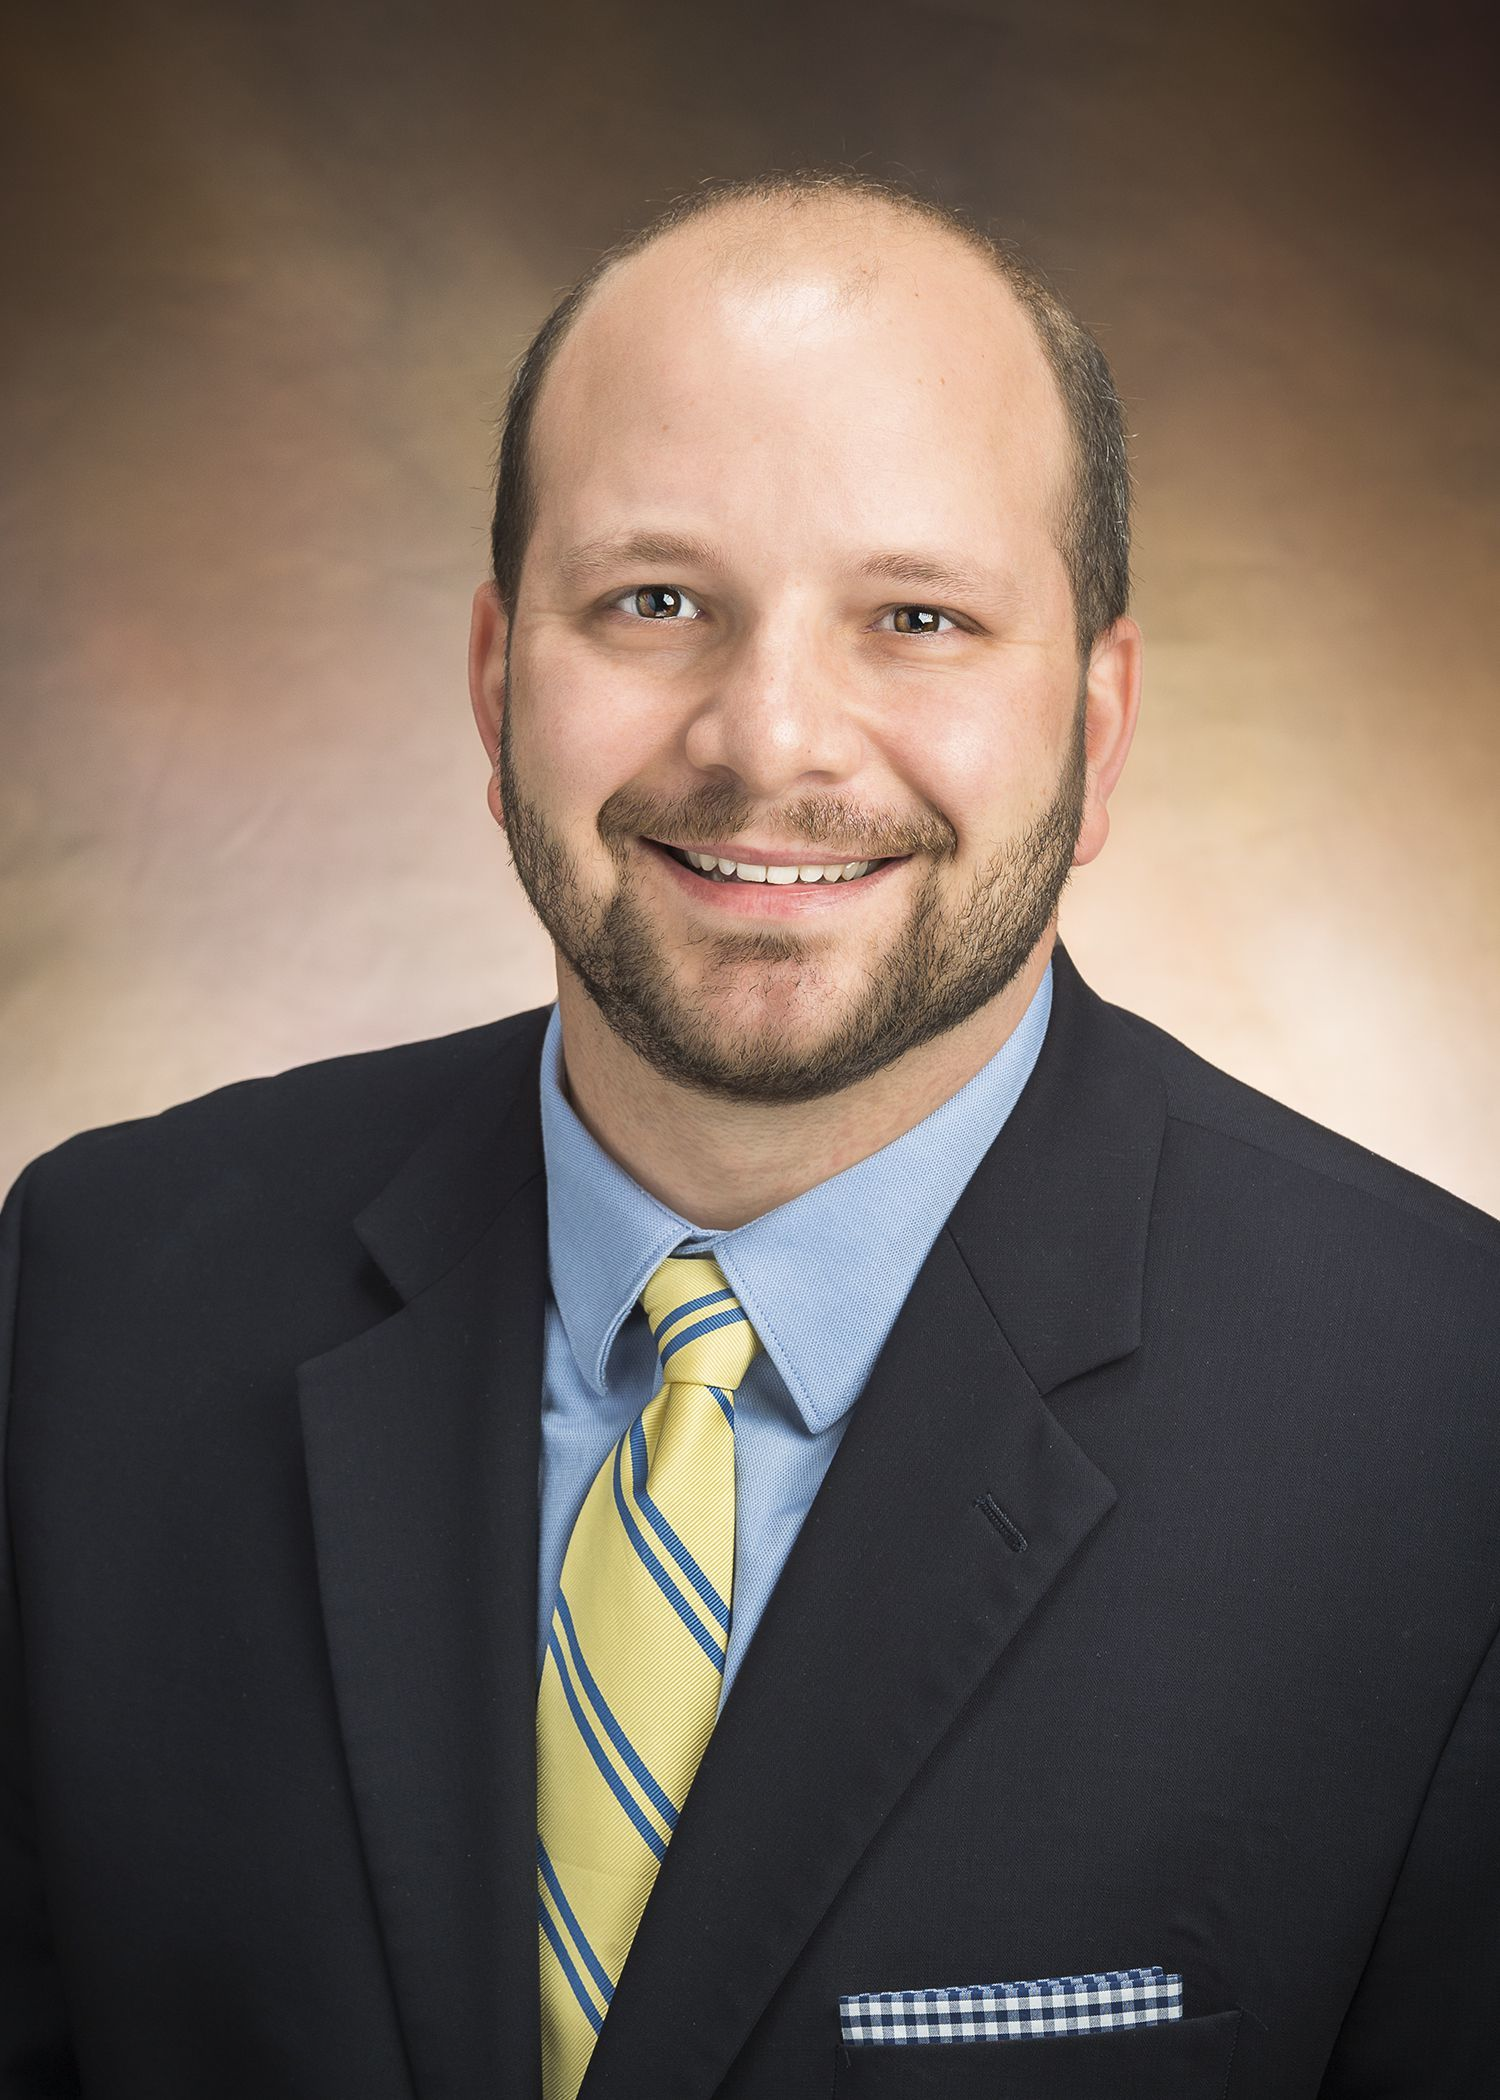 Brian Vernau is a sports medicine pediatrician at the Children's Hospital of Philadelphia Care Network in Glen Mills.